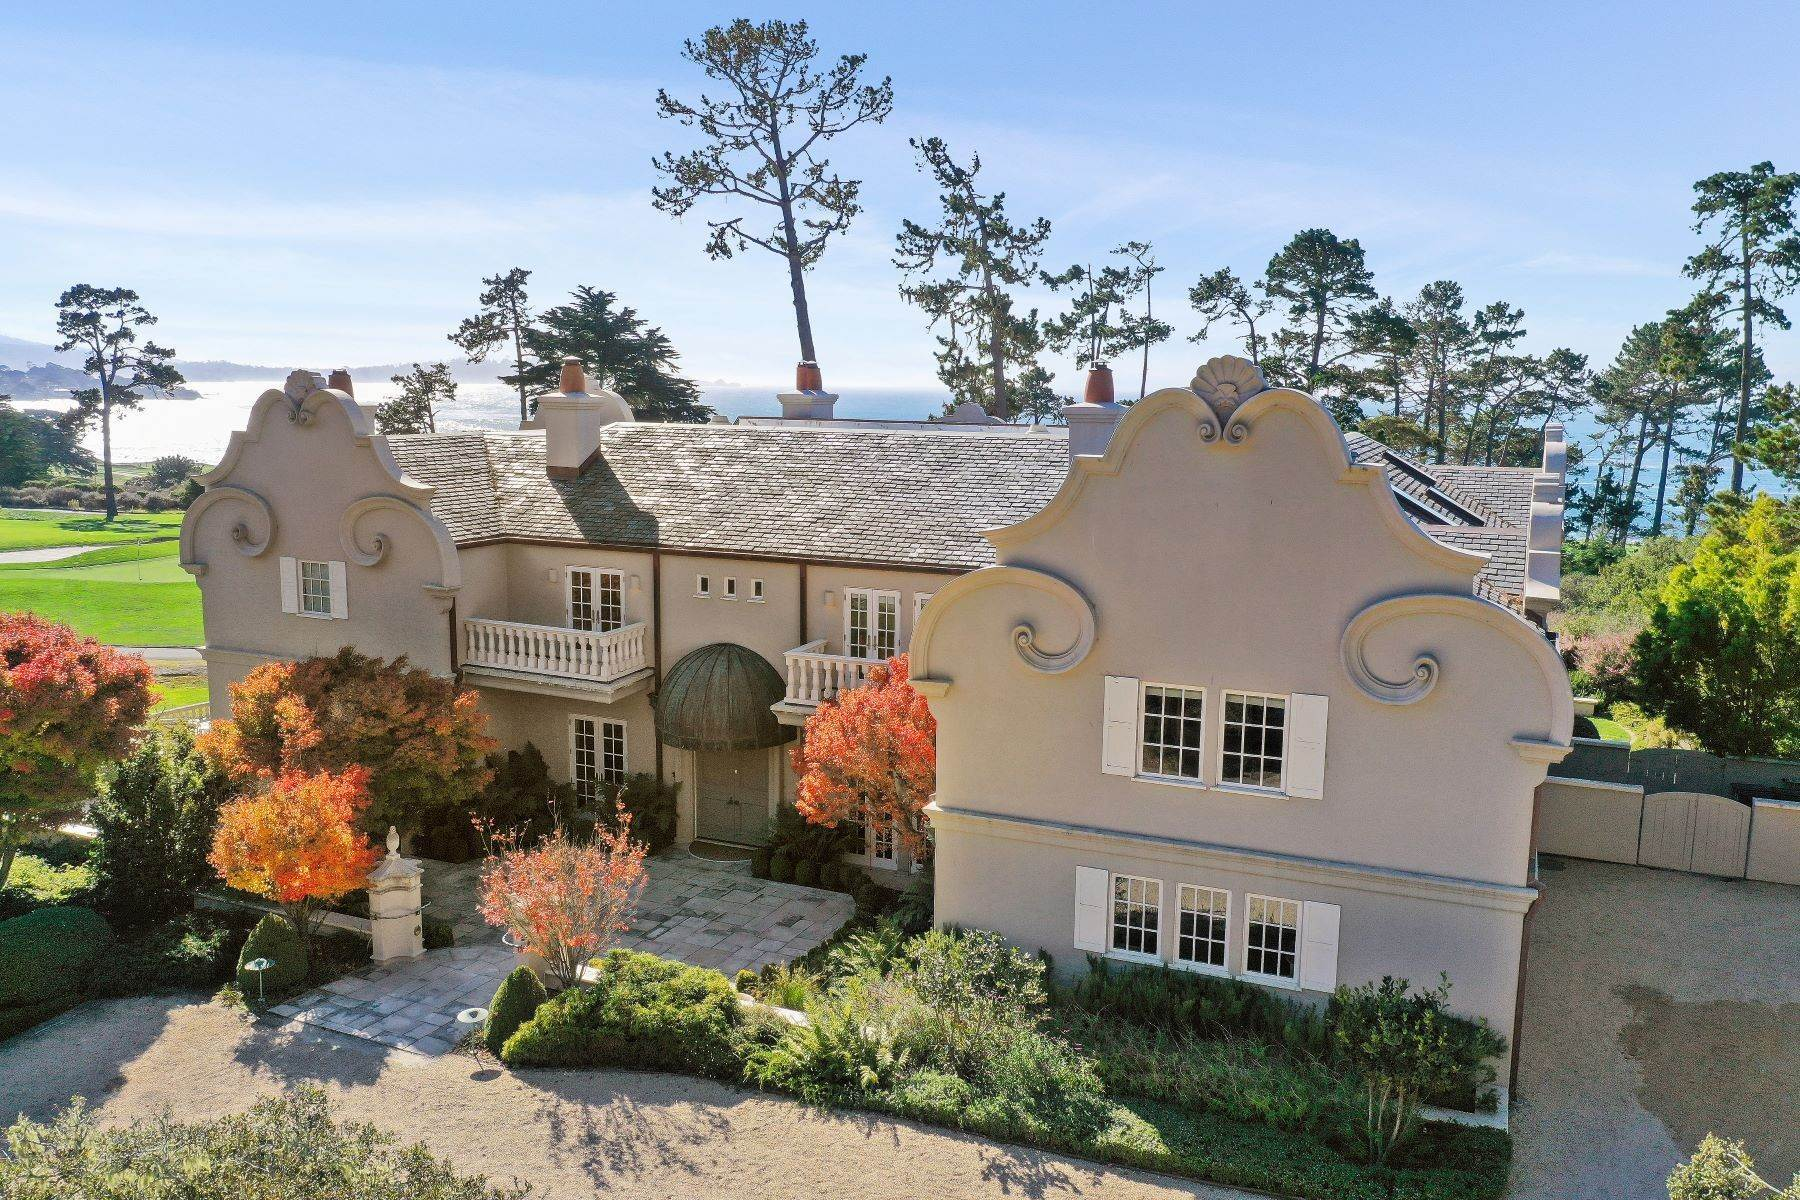 Single Family Homes for Sale at Sophisticated Pebble Beach Estate 3410 17 Mile Drive, Pebble Beach, California 93953 United States